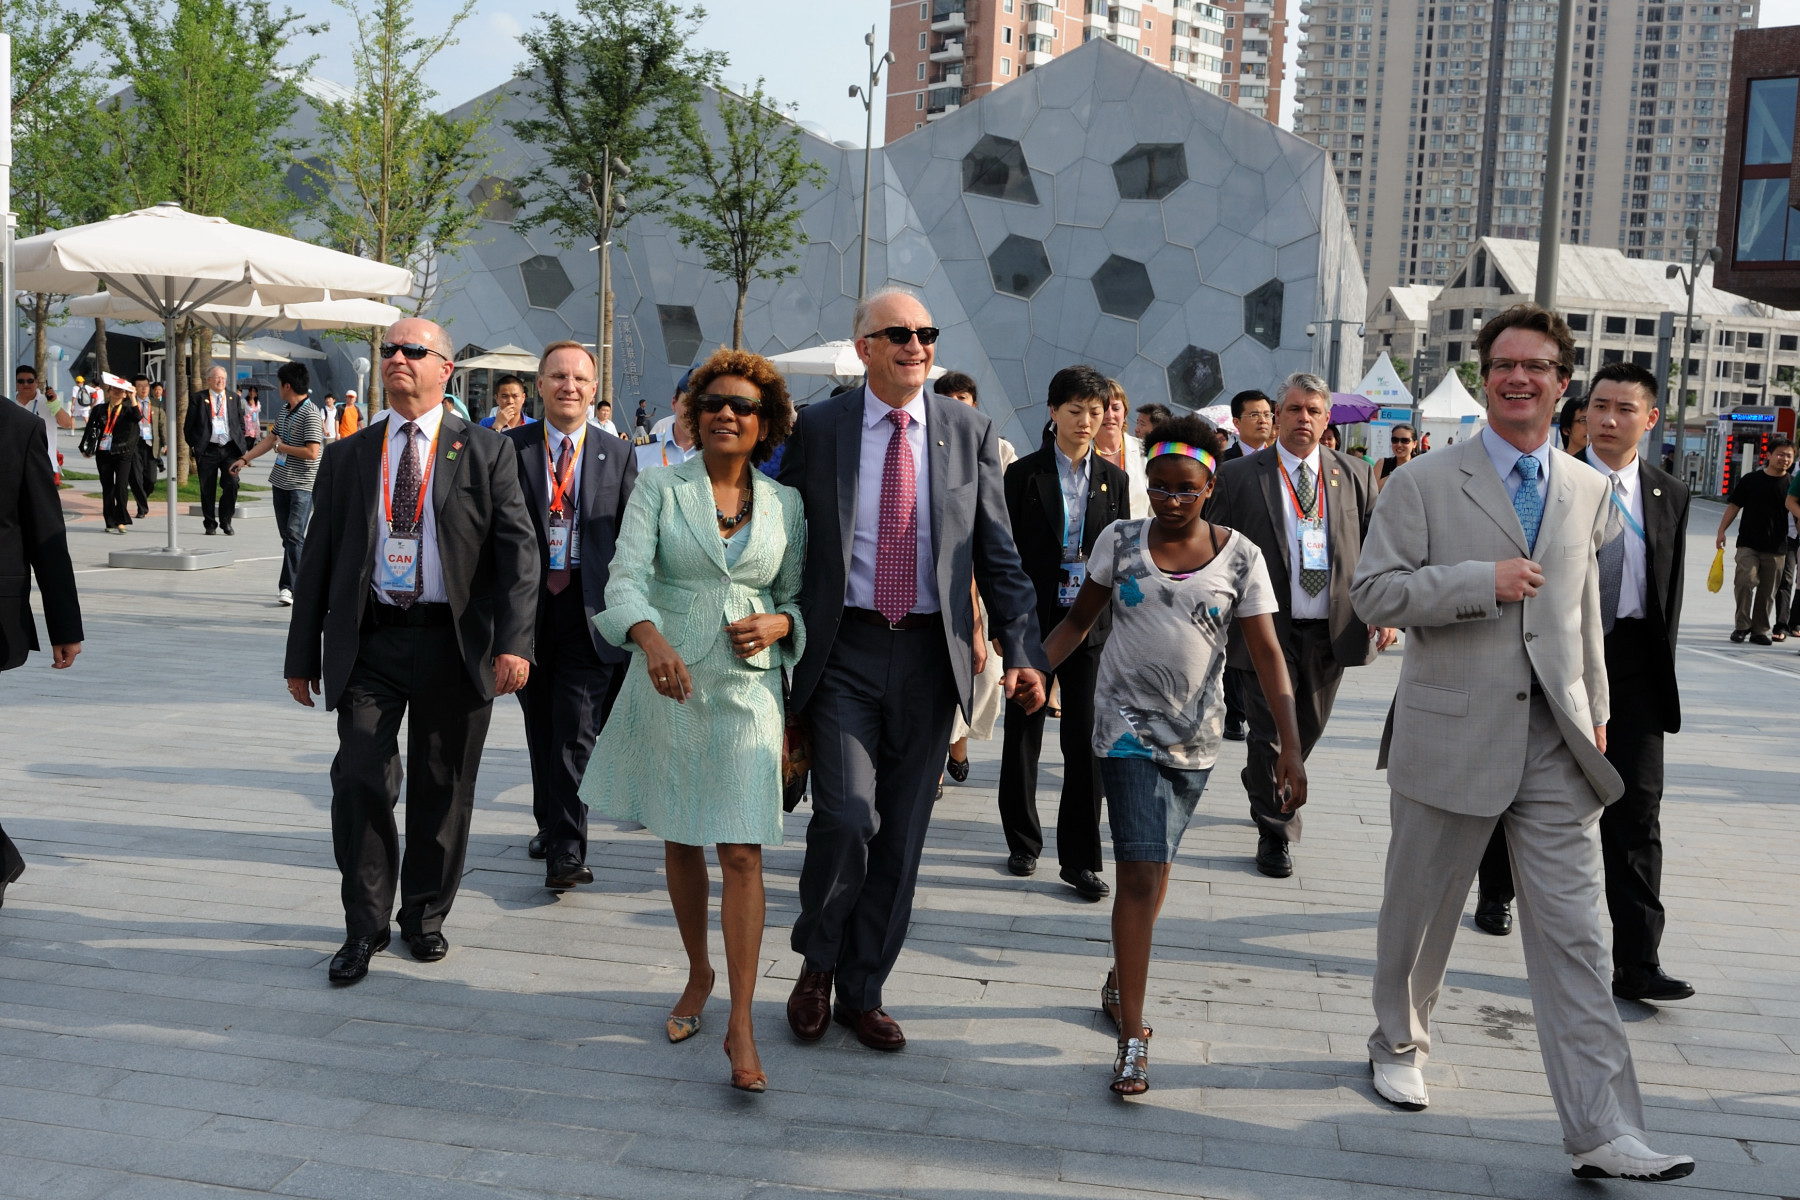 Their Excellencies visited Espace Montréal at Urban Best Practices Area of Shanghai Expo.